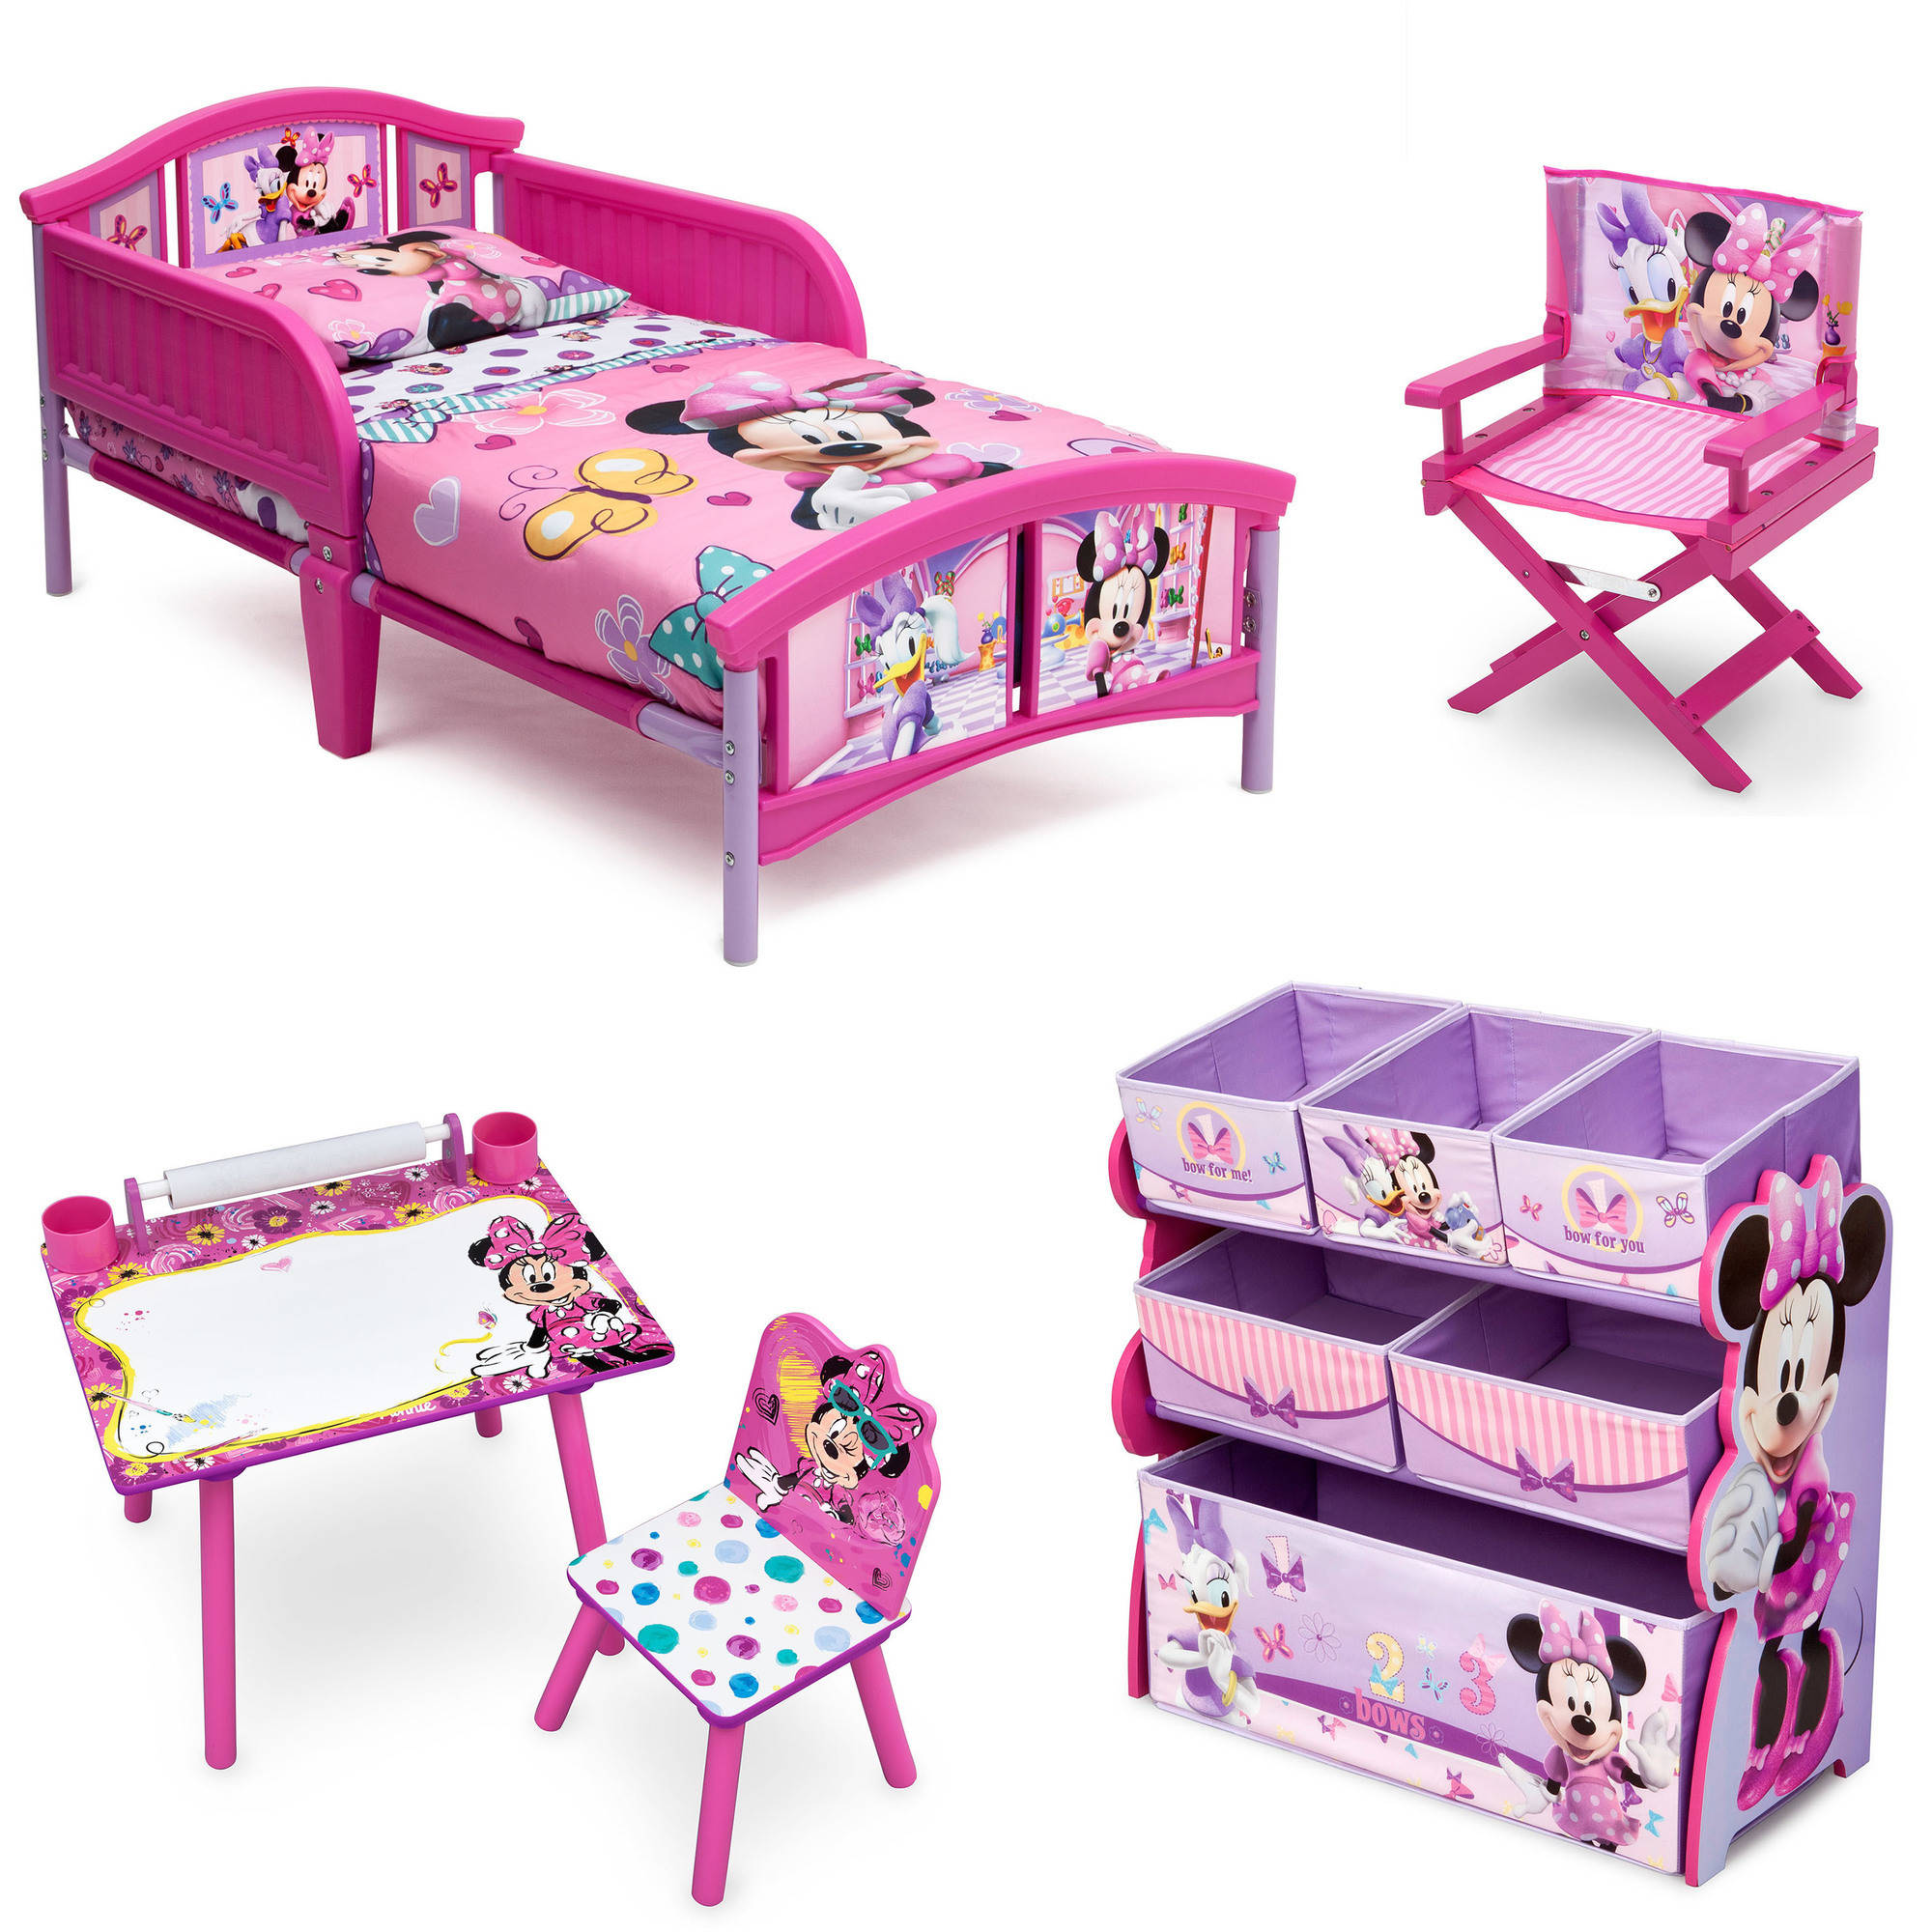 minnie mouse upholstered chair high end folding lawn chairs furniture - tktb